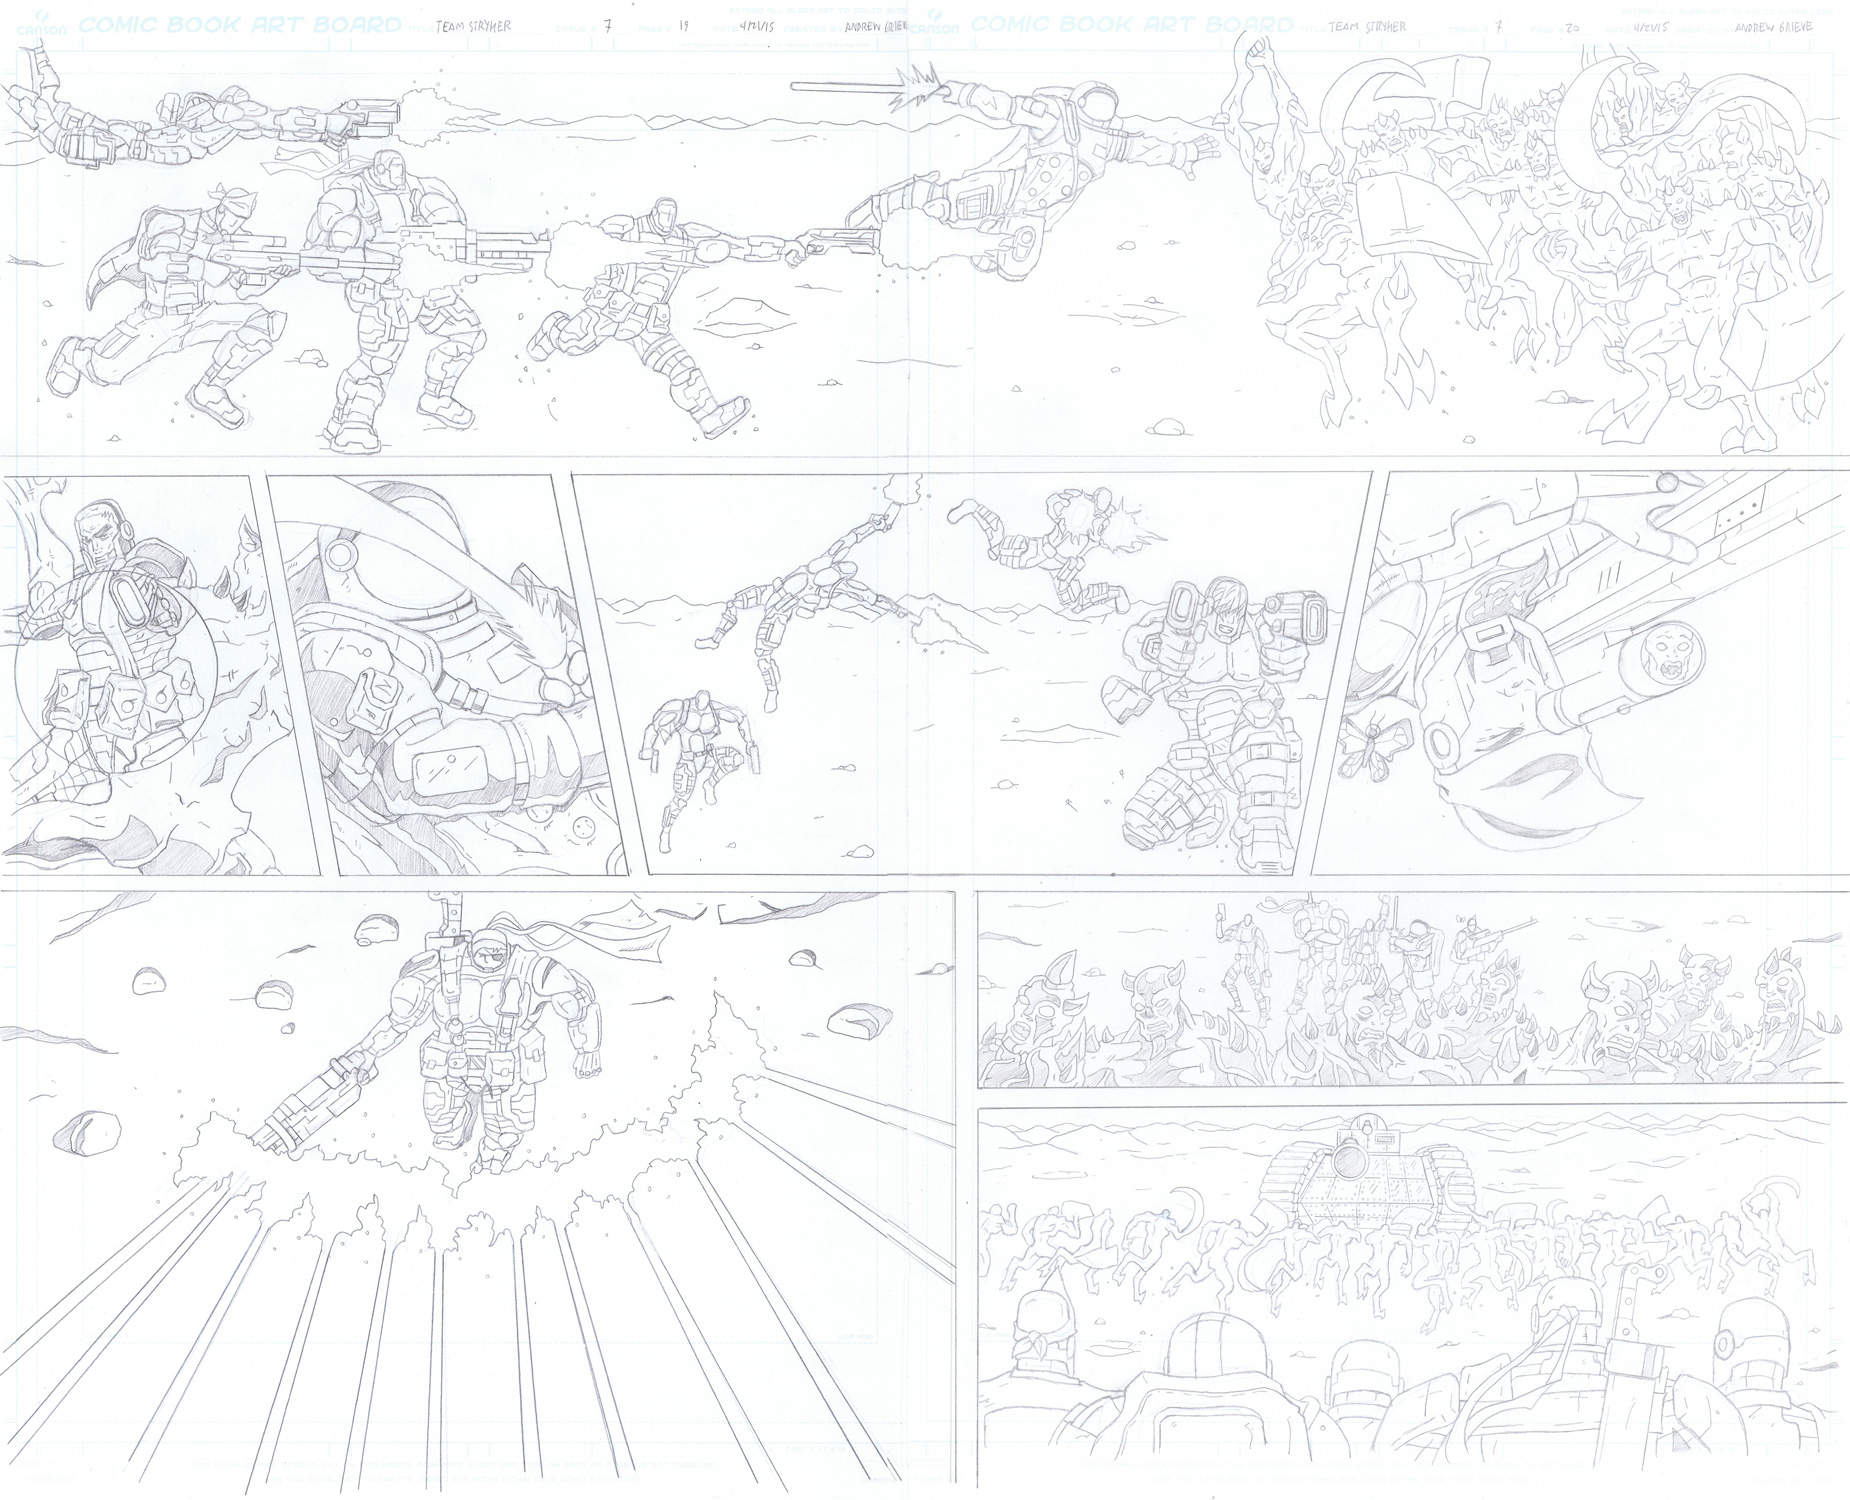 MISSION 007: PAGE 19-20 PENCIL